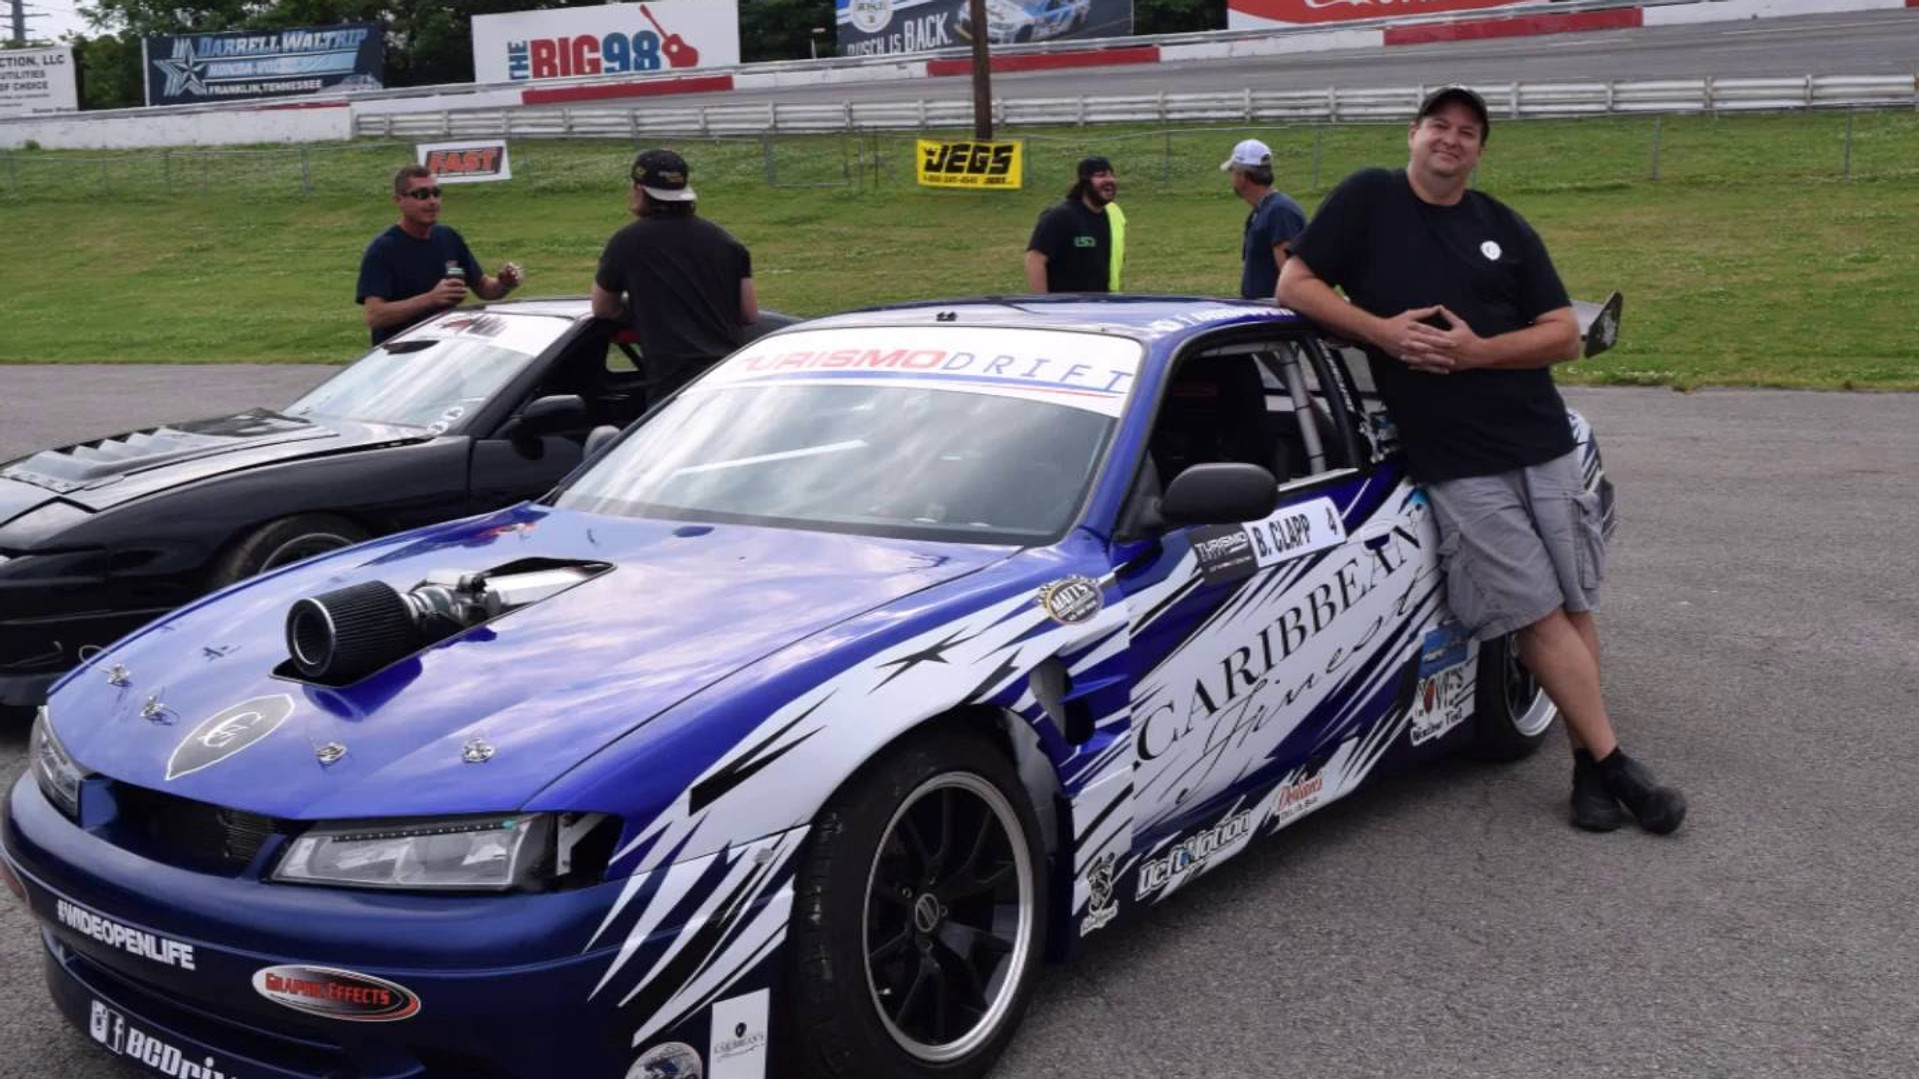 Barry Clapp at Turismo Drift